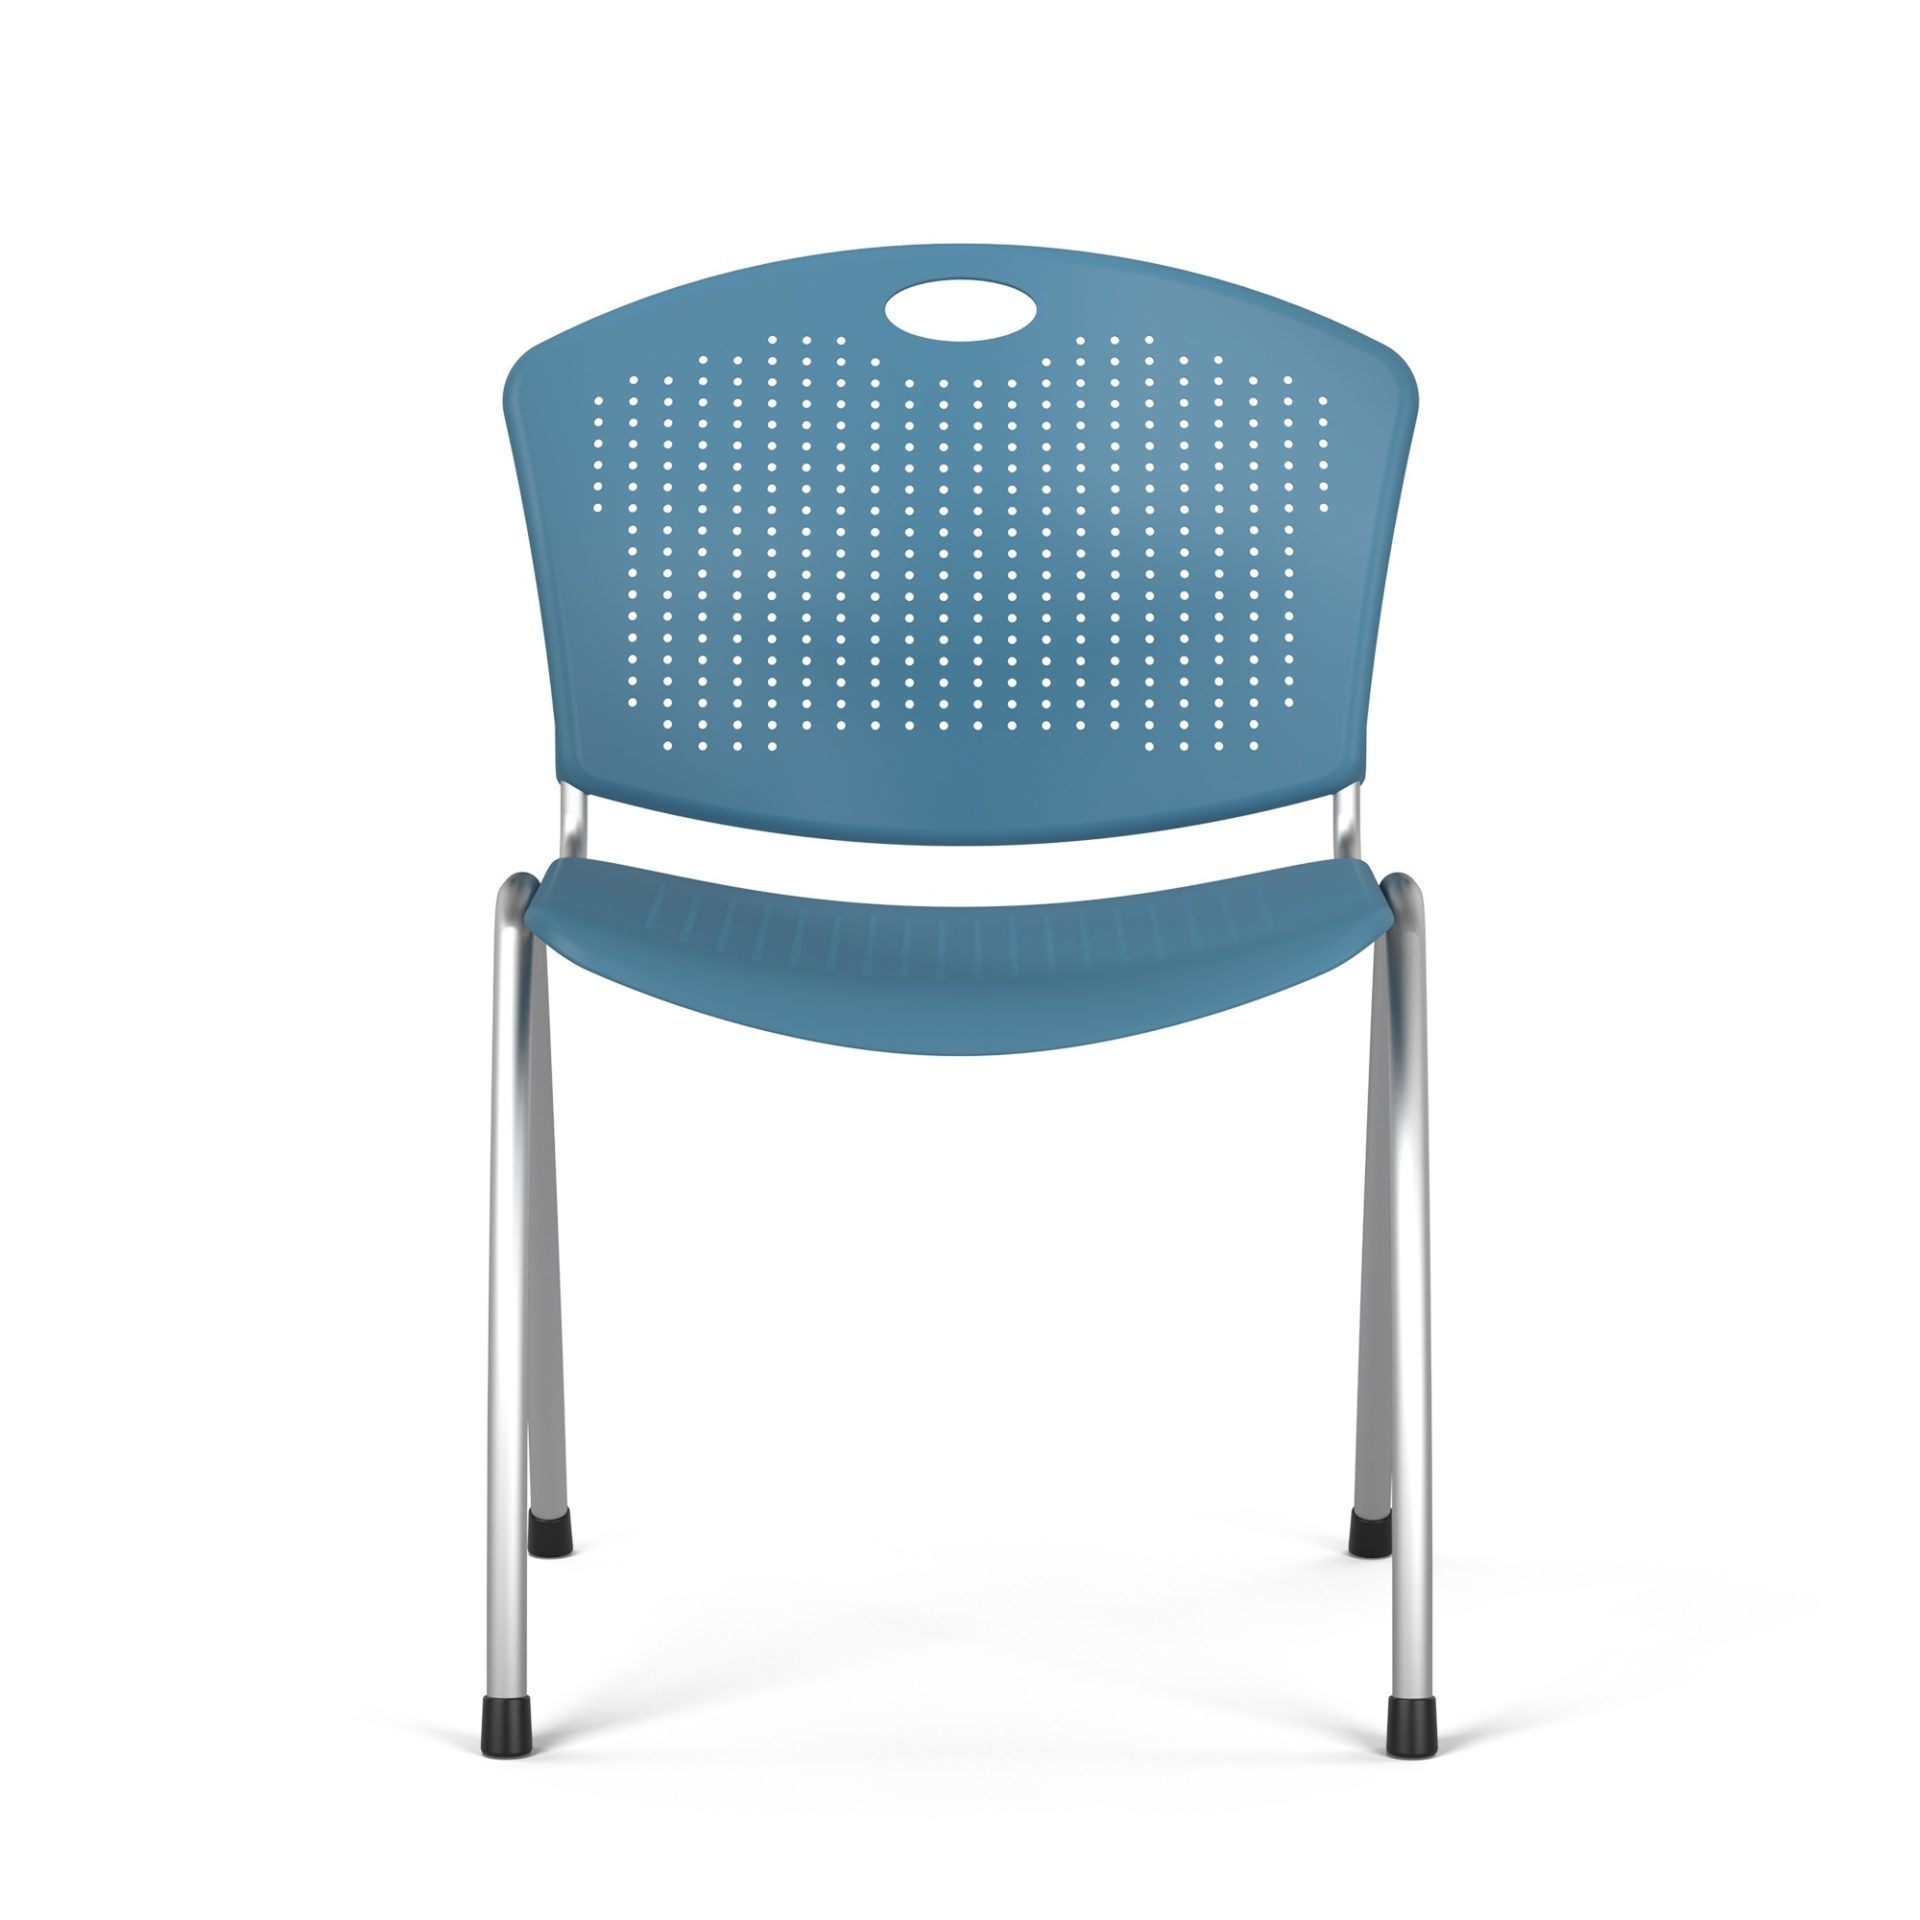 SitOnIt Anytime Multipurpose Guest Chair